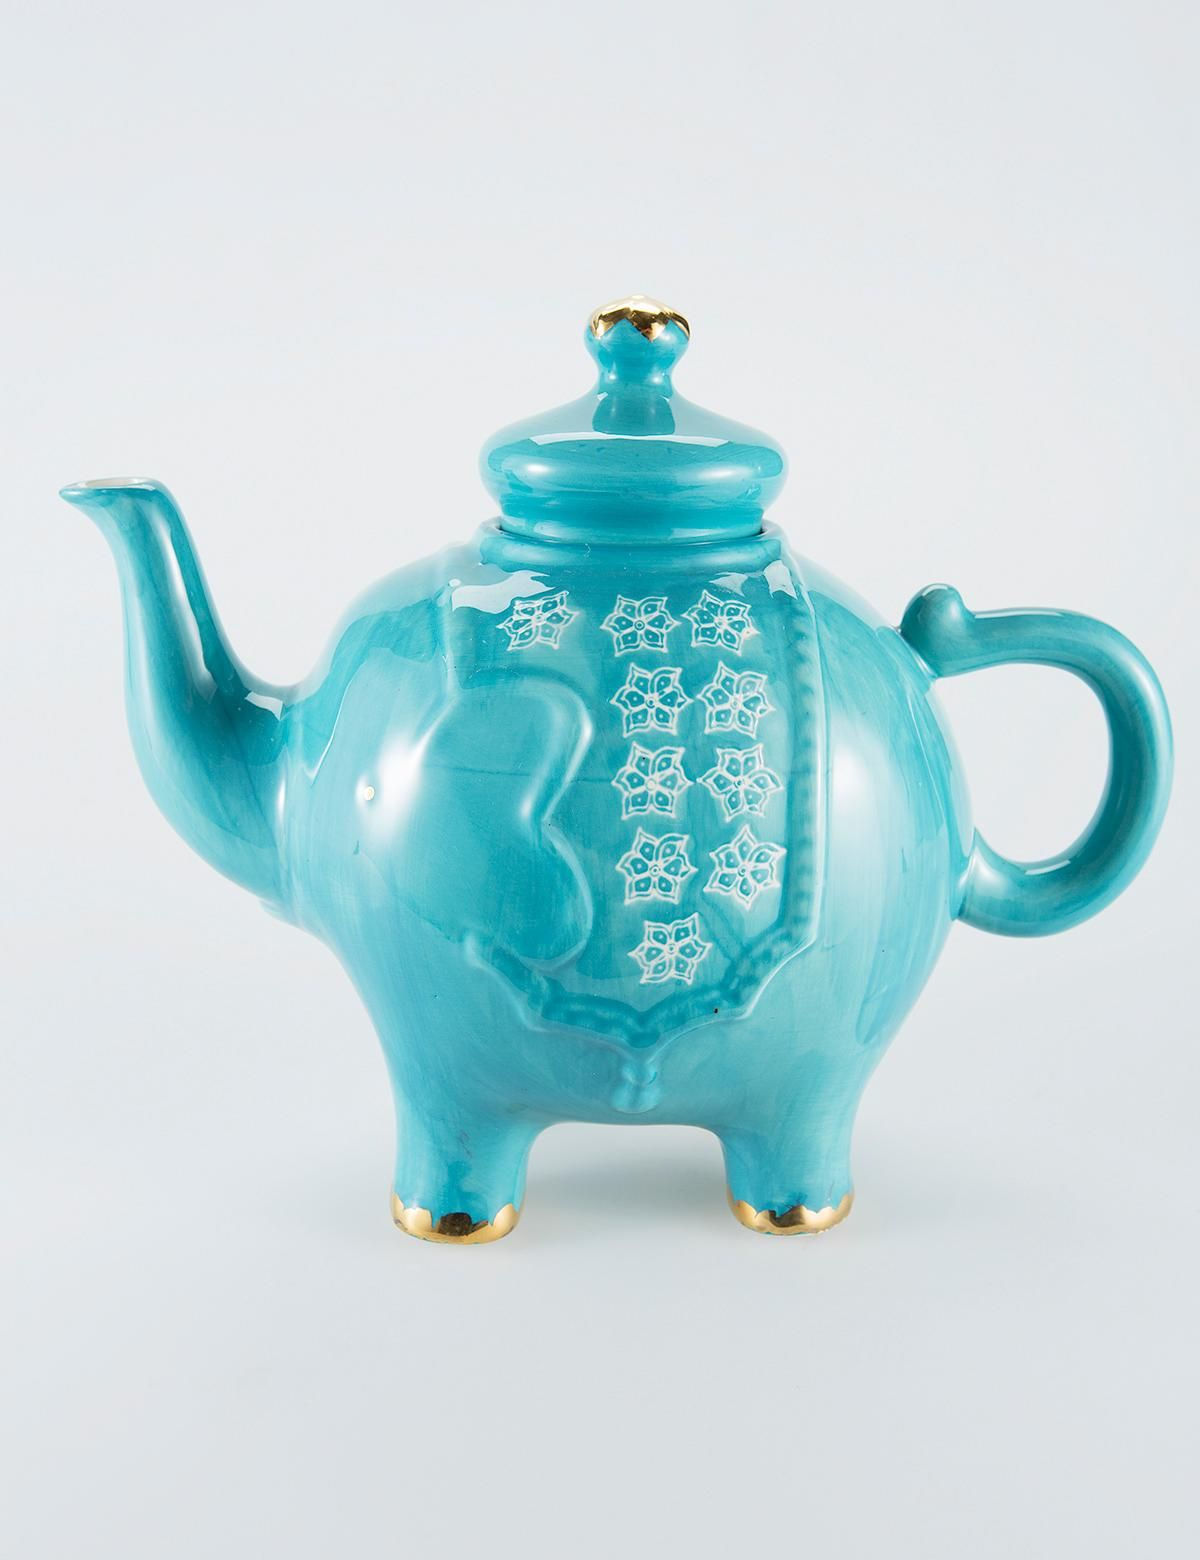 Elephant tekanna turkos carafes pitchers ceramic glass glas porslin inredning - Elephant cast iron teapot ...